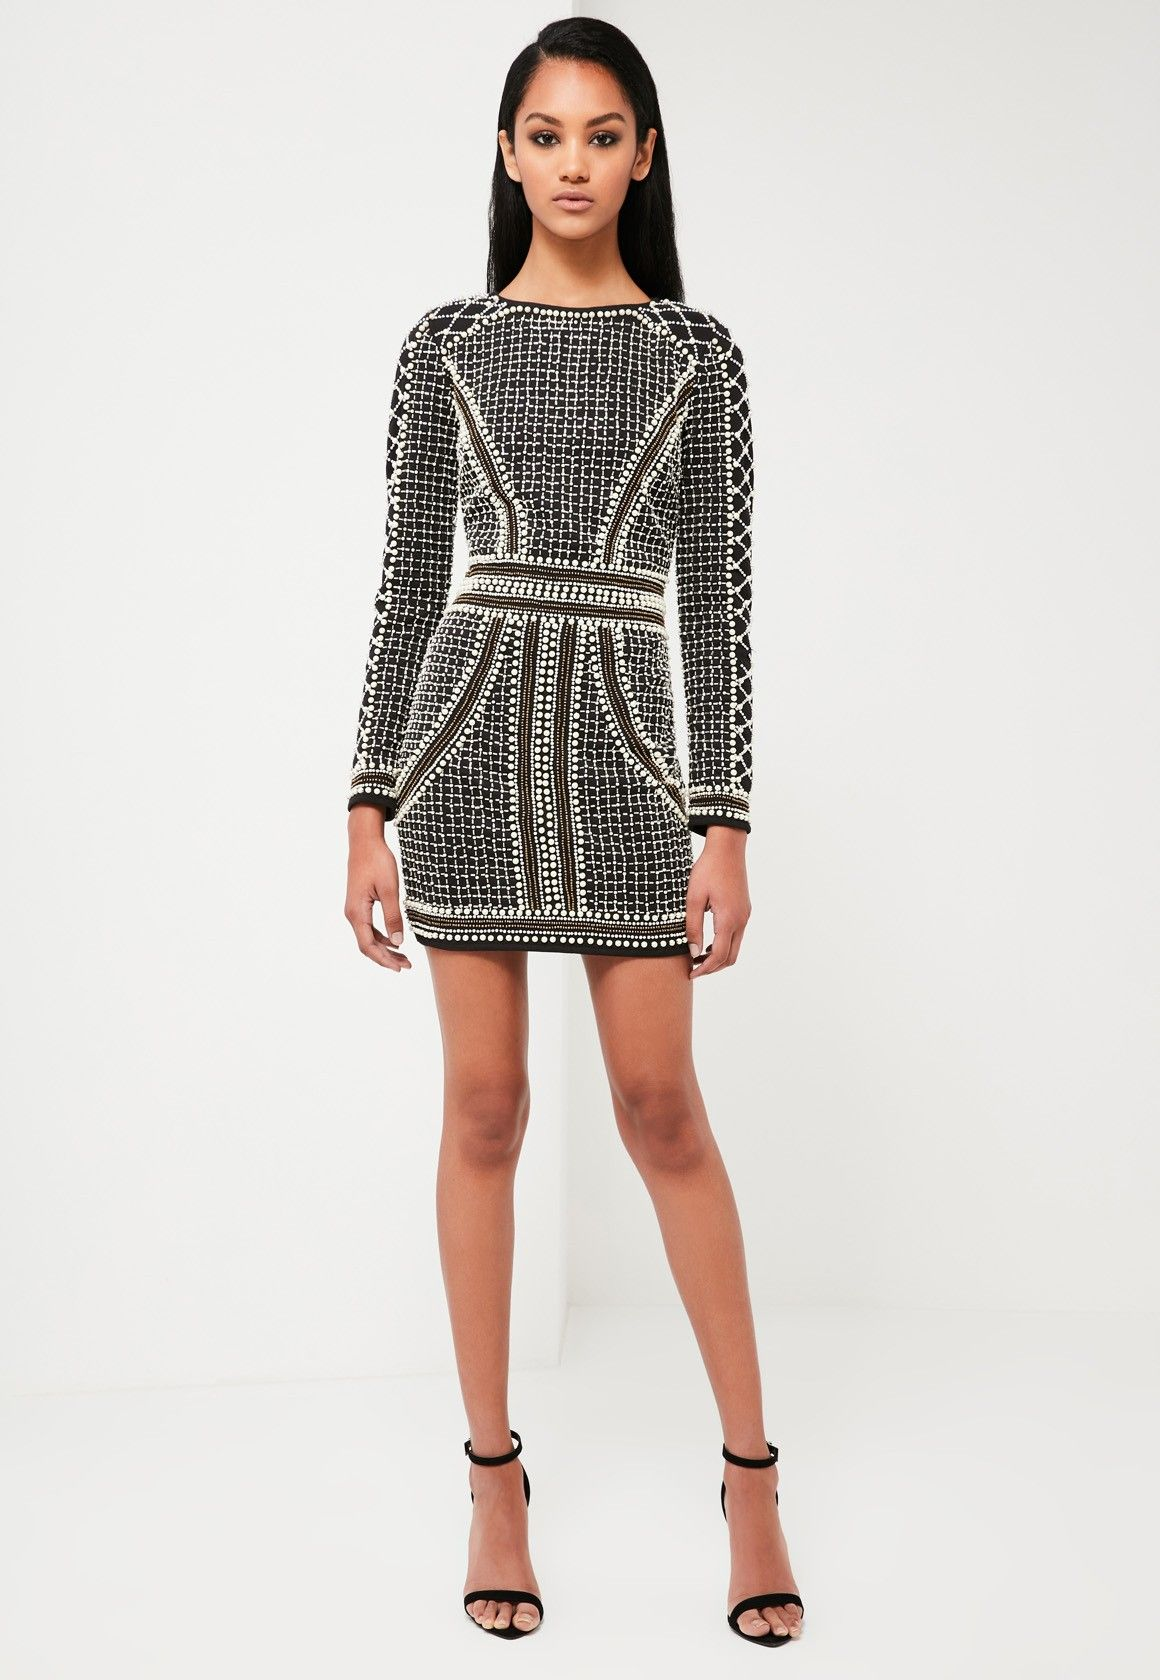 537d687a1153f Missguided - Peace Love Black Embellished Long Sleeve Dress ...